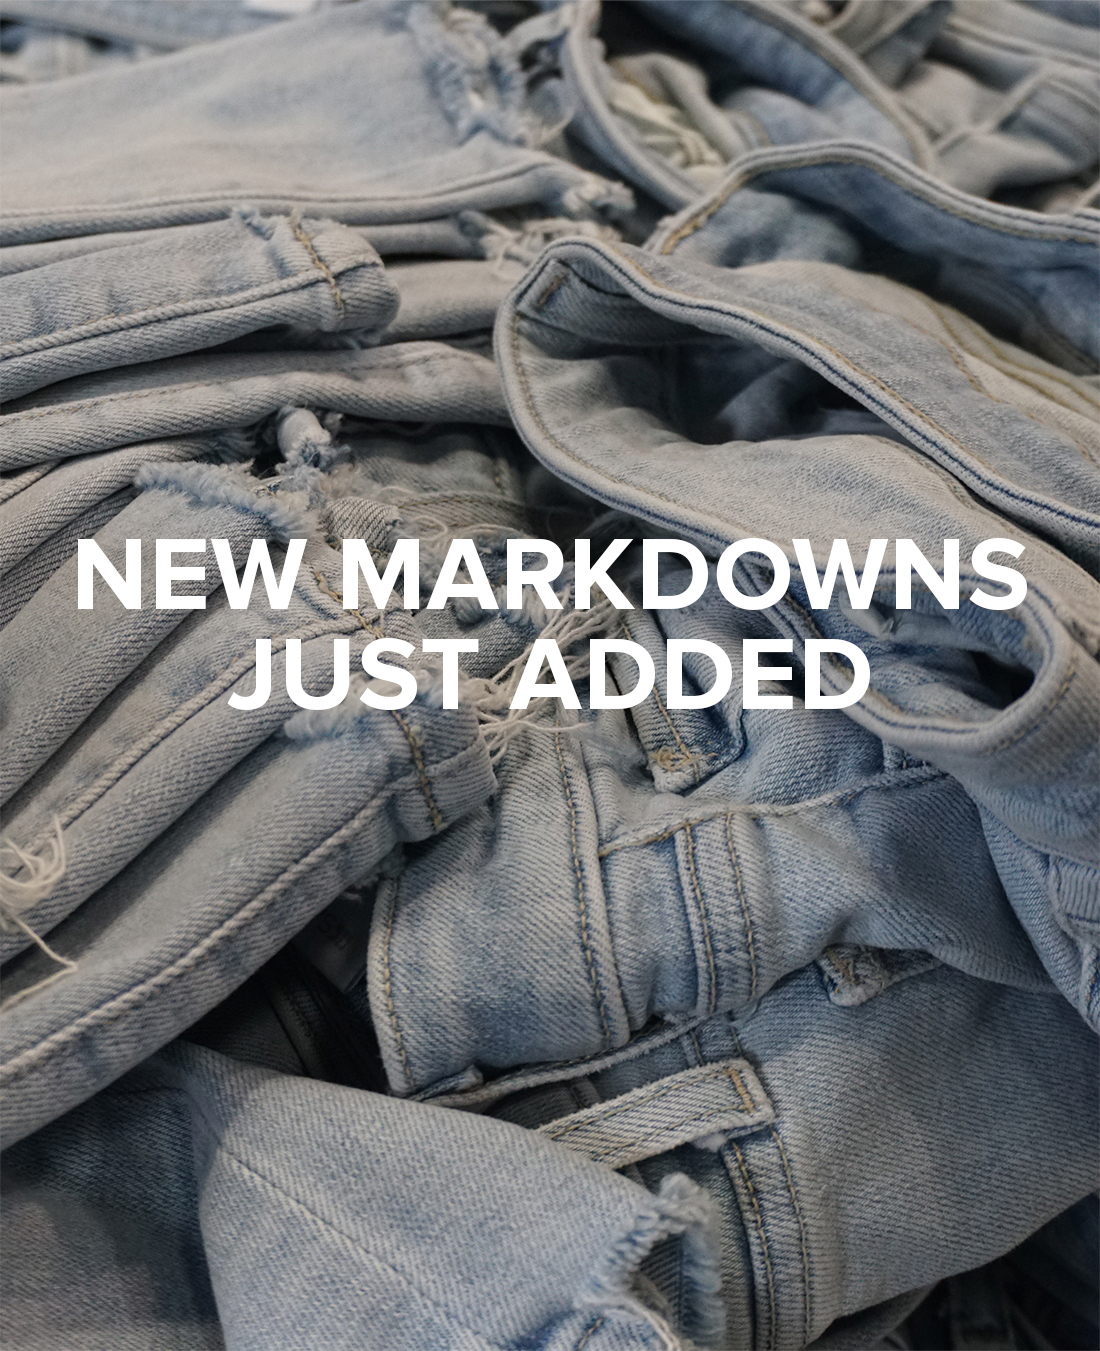 New Markdowns Just Added